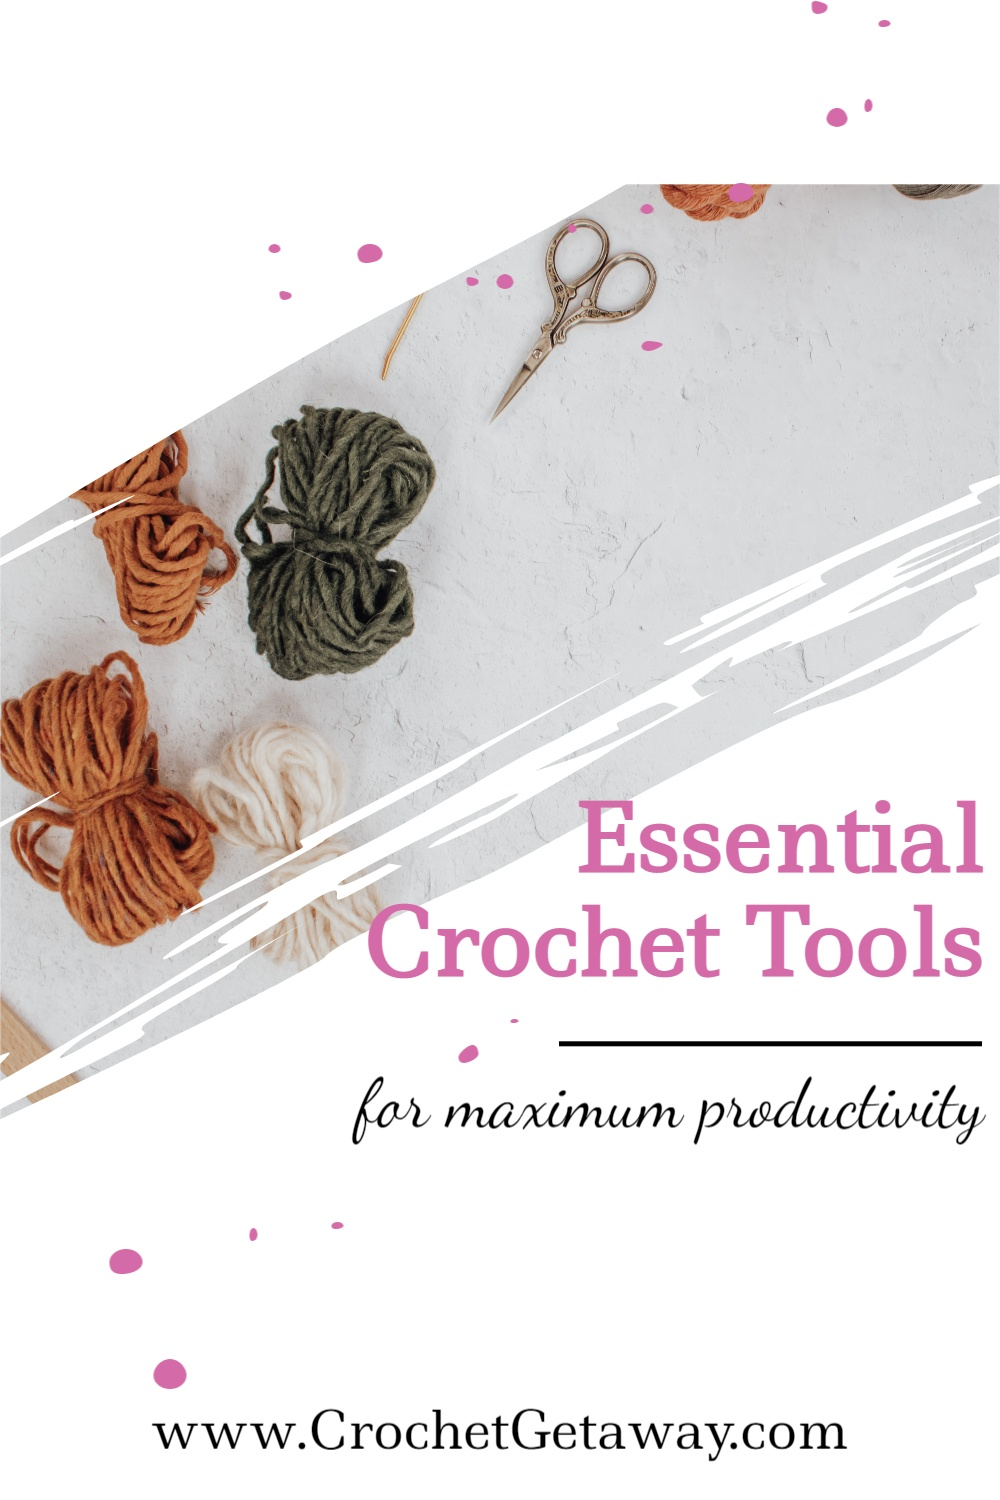 Image of yarn, scissors, and other tools